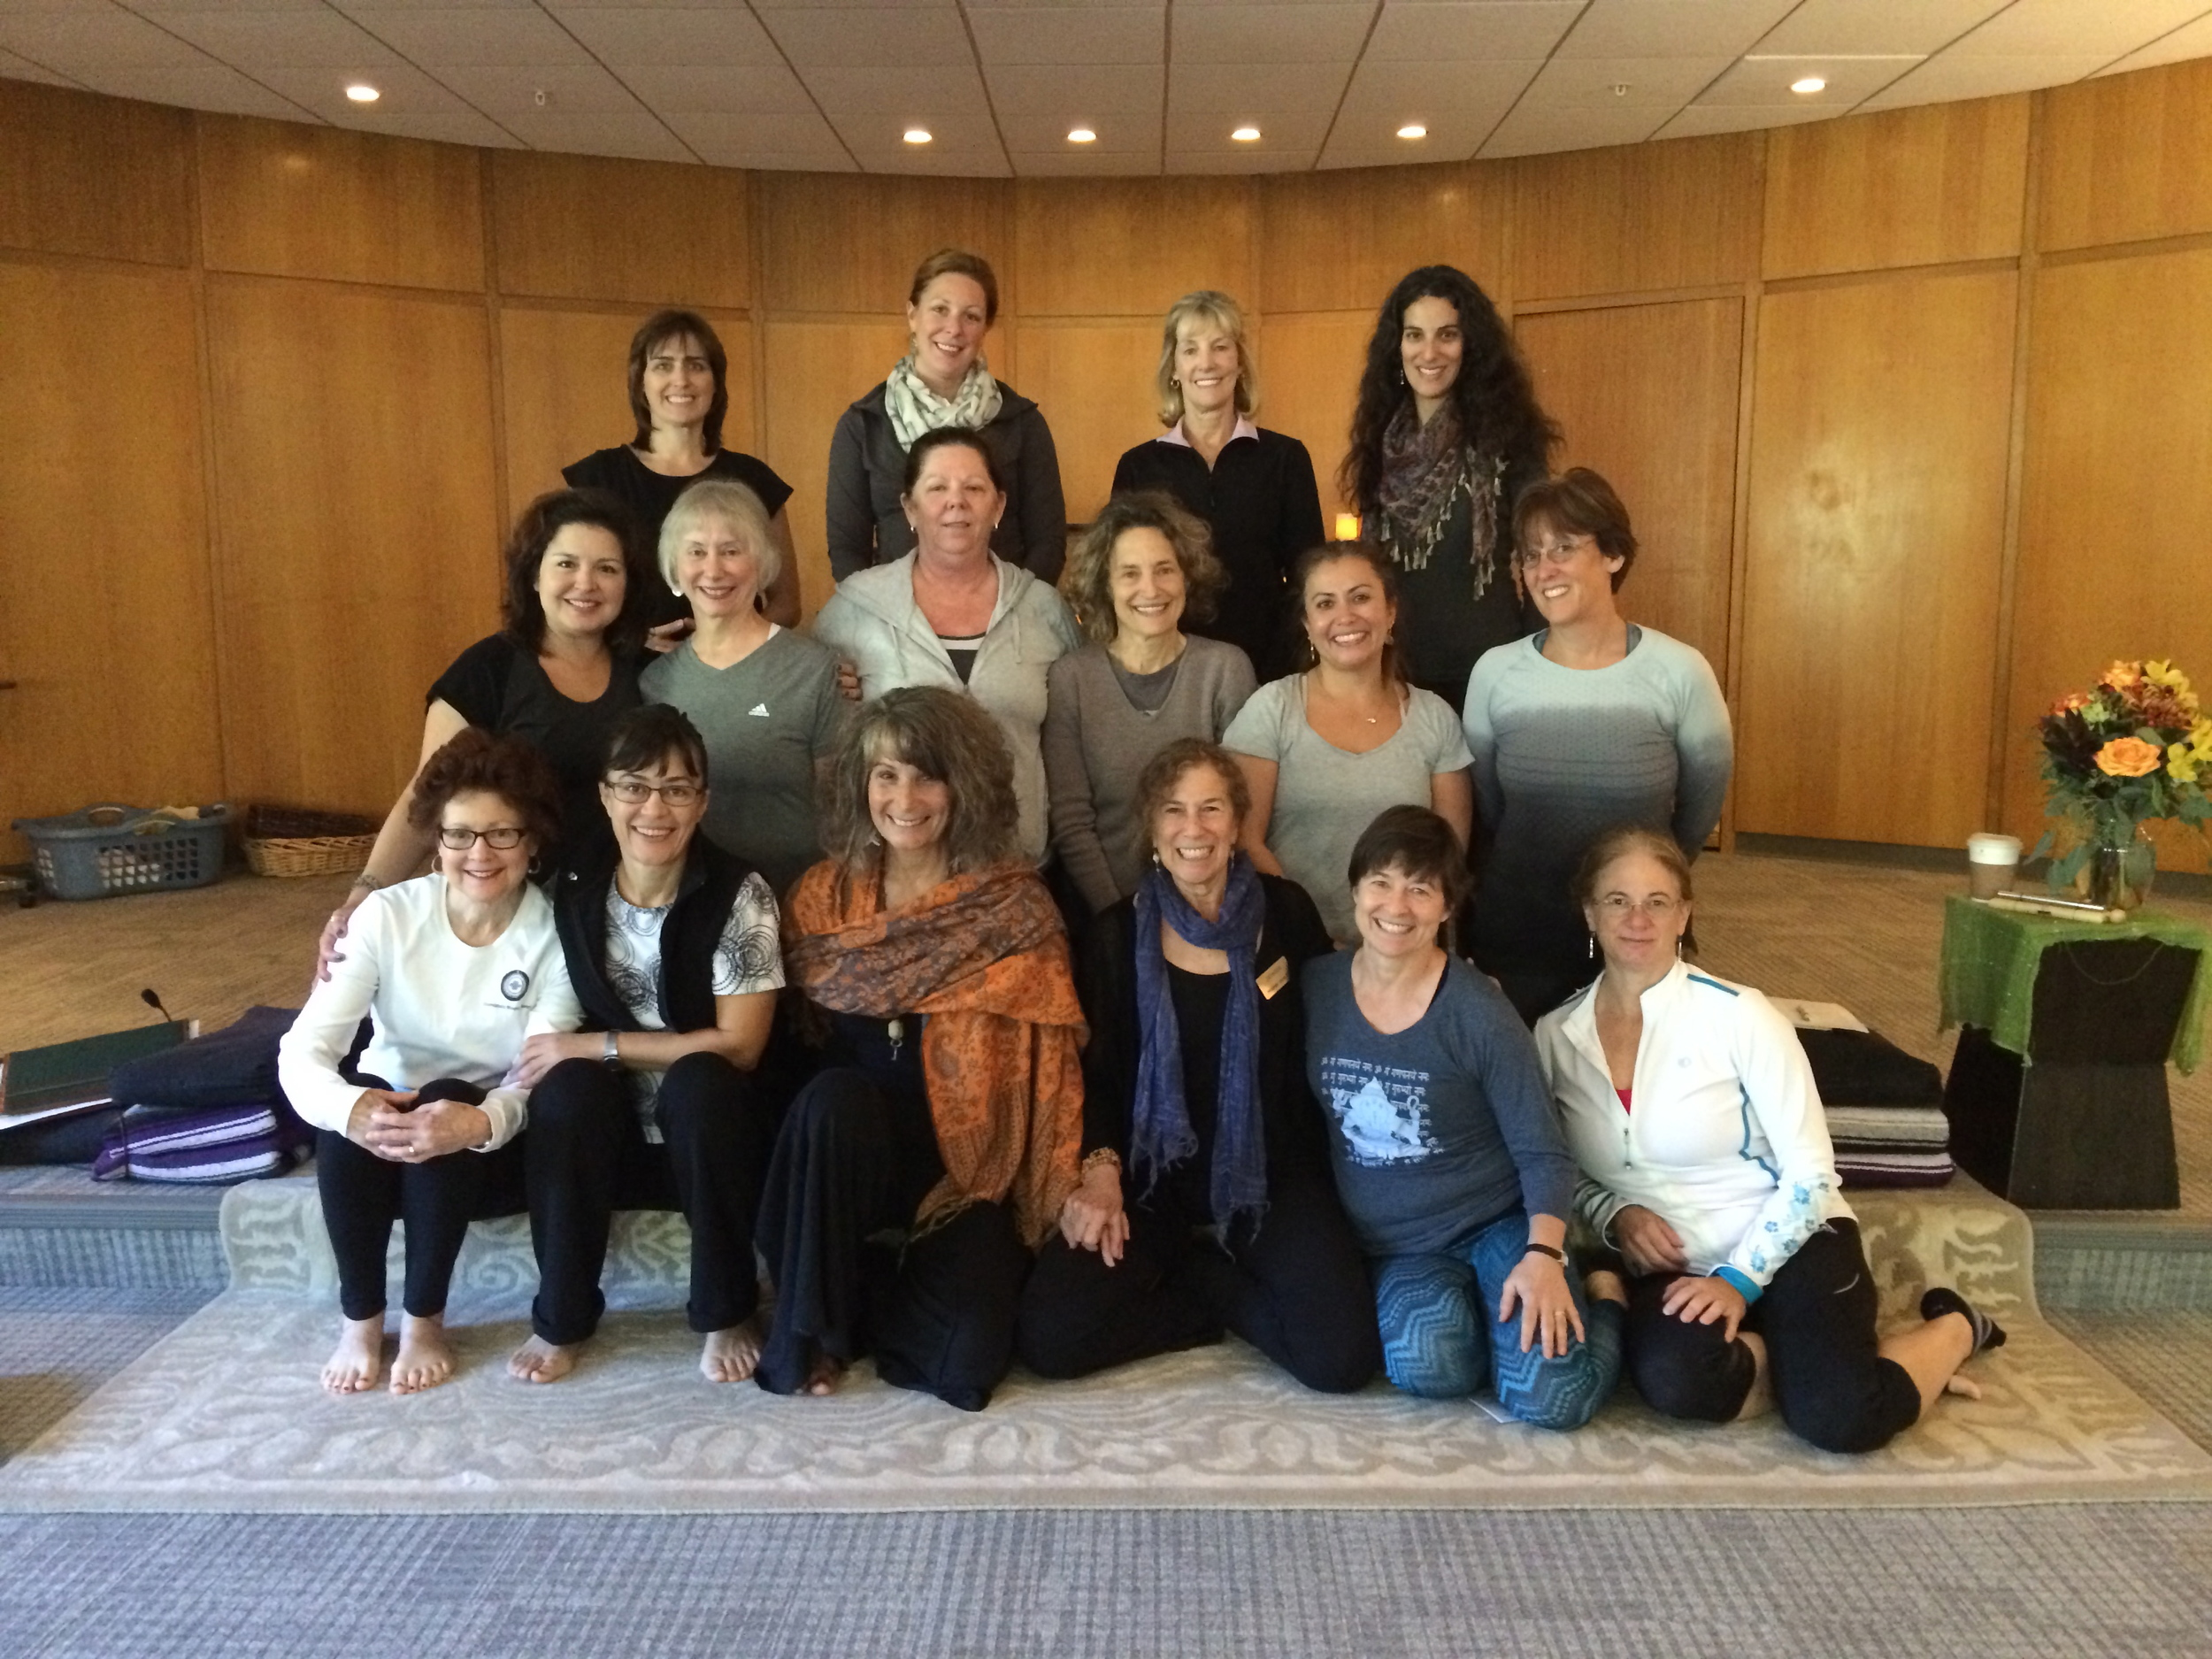 Accommodating Life's Changes: A Women's Yoga & Meditation Retreat - 2014